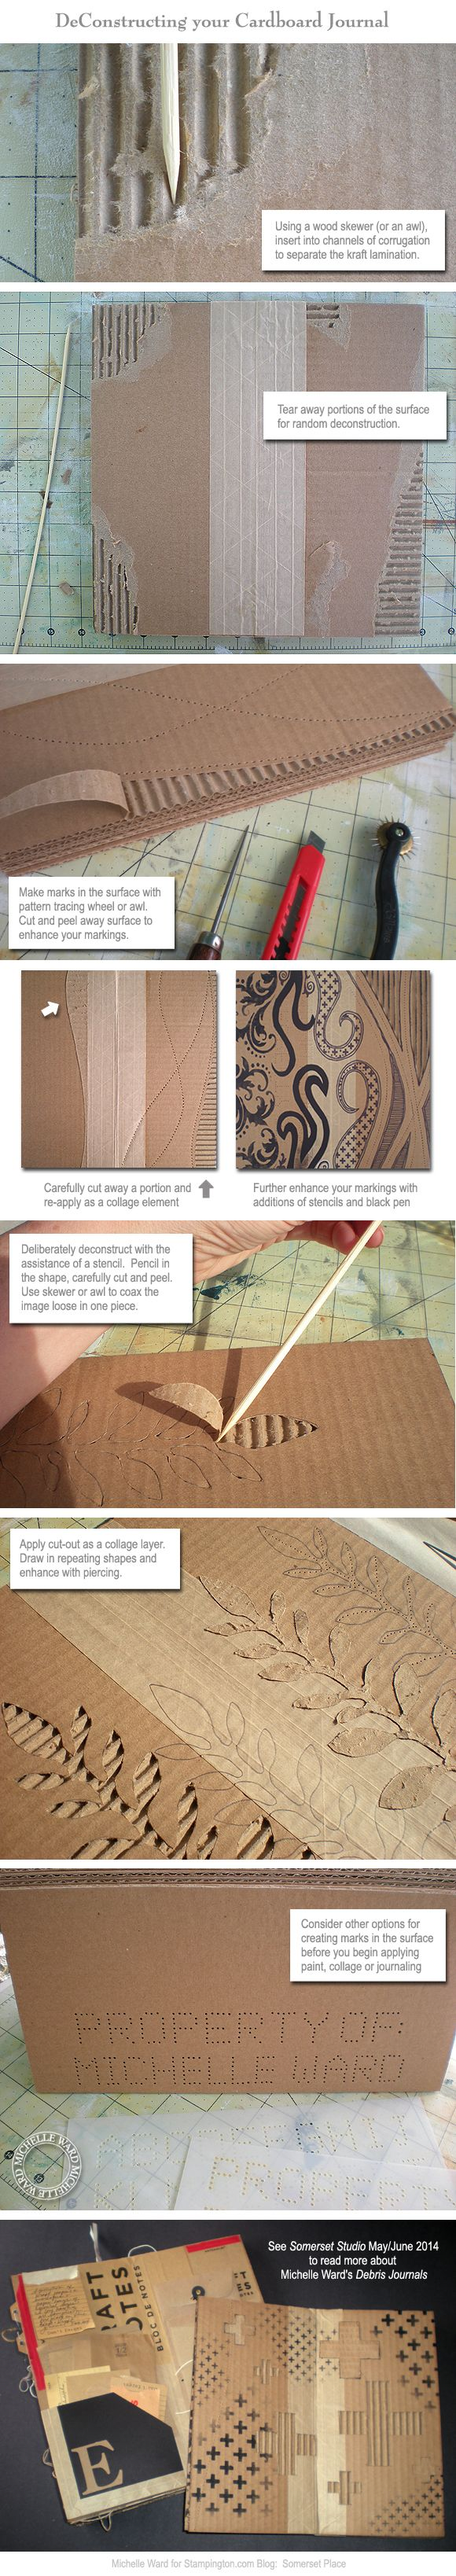 One of guest artist Michelle Ward's duo of DIY tutorials [On the Blog]. After you learn how to construct a cardboard journal, see how to deconstruct it with these step-by-step photos and instructions from Michelle!